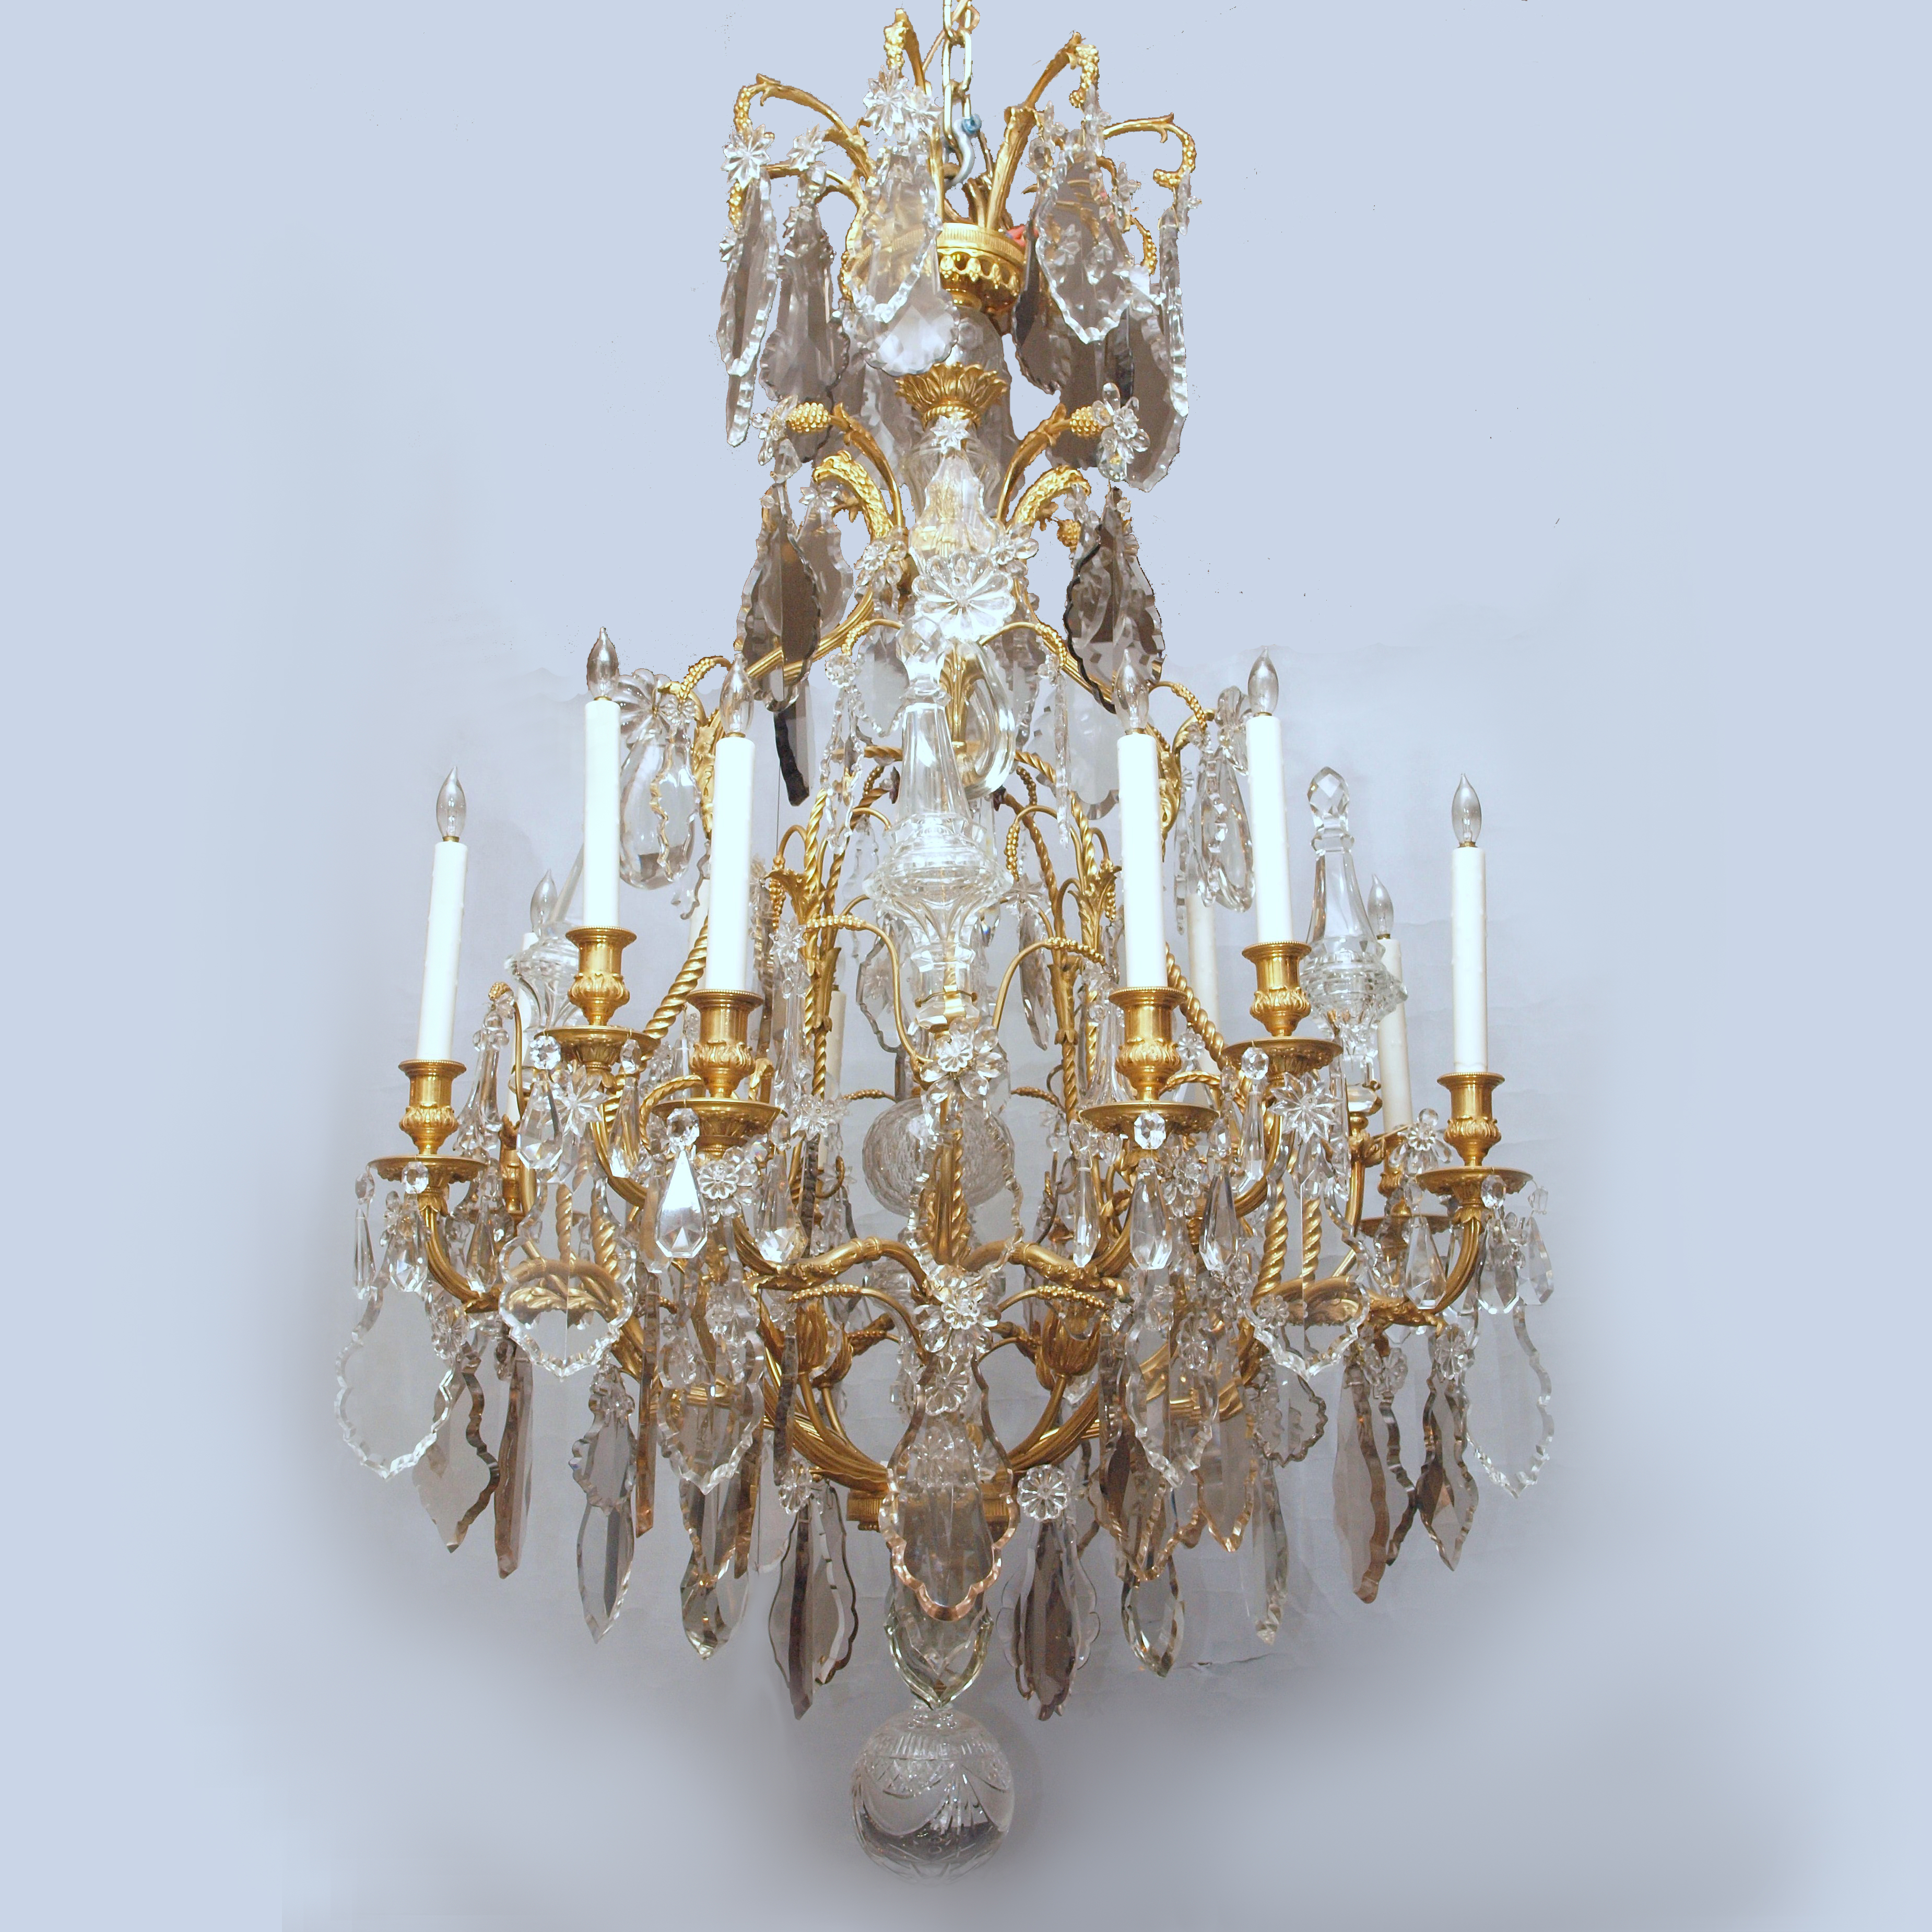 Antique French Ormolu and Baccarat Crystal Chandelier circa 1840 ...